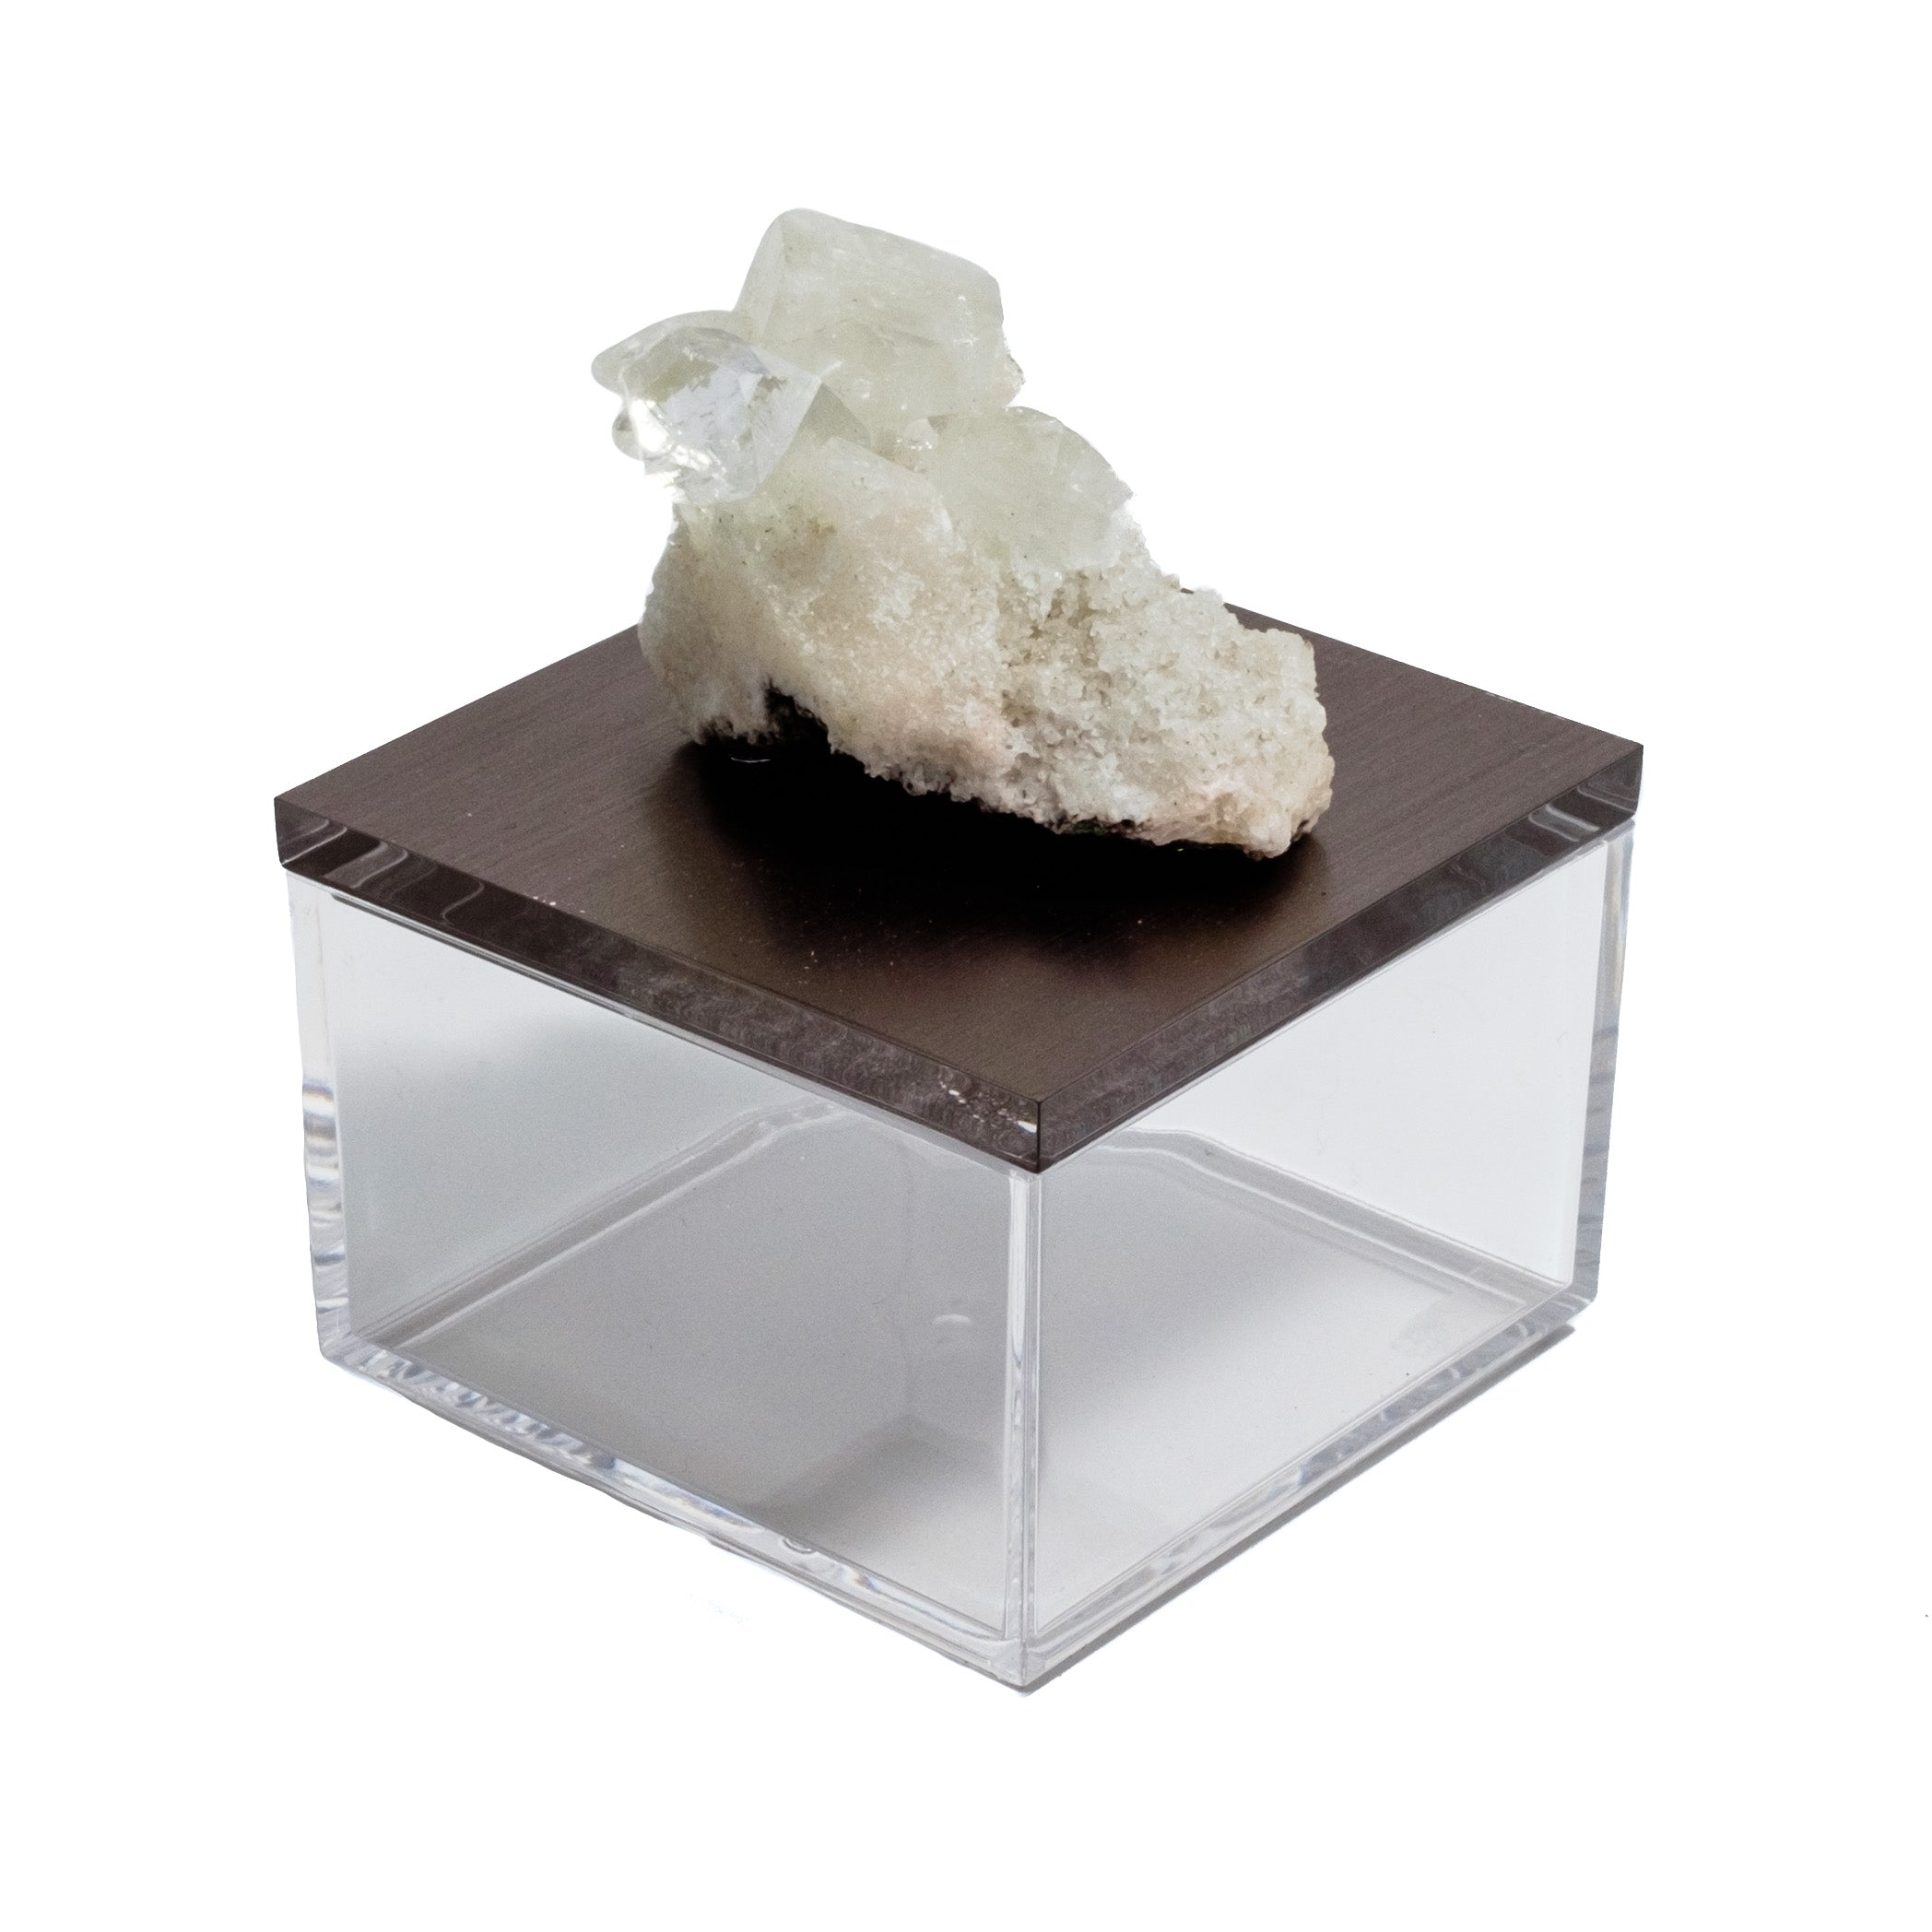 Apophyllite gemstone box by Mapleton Drive